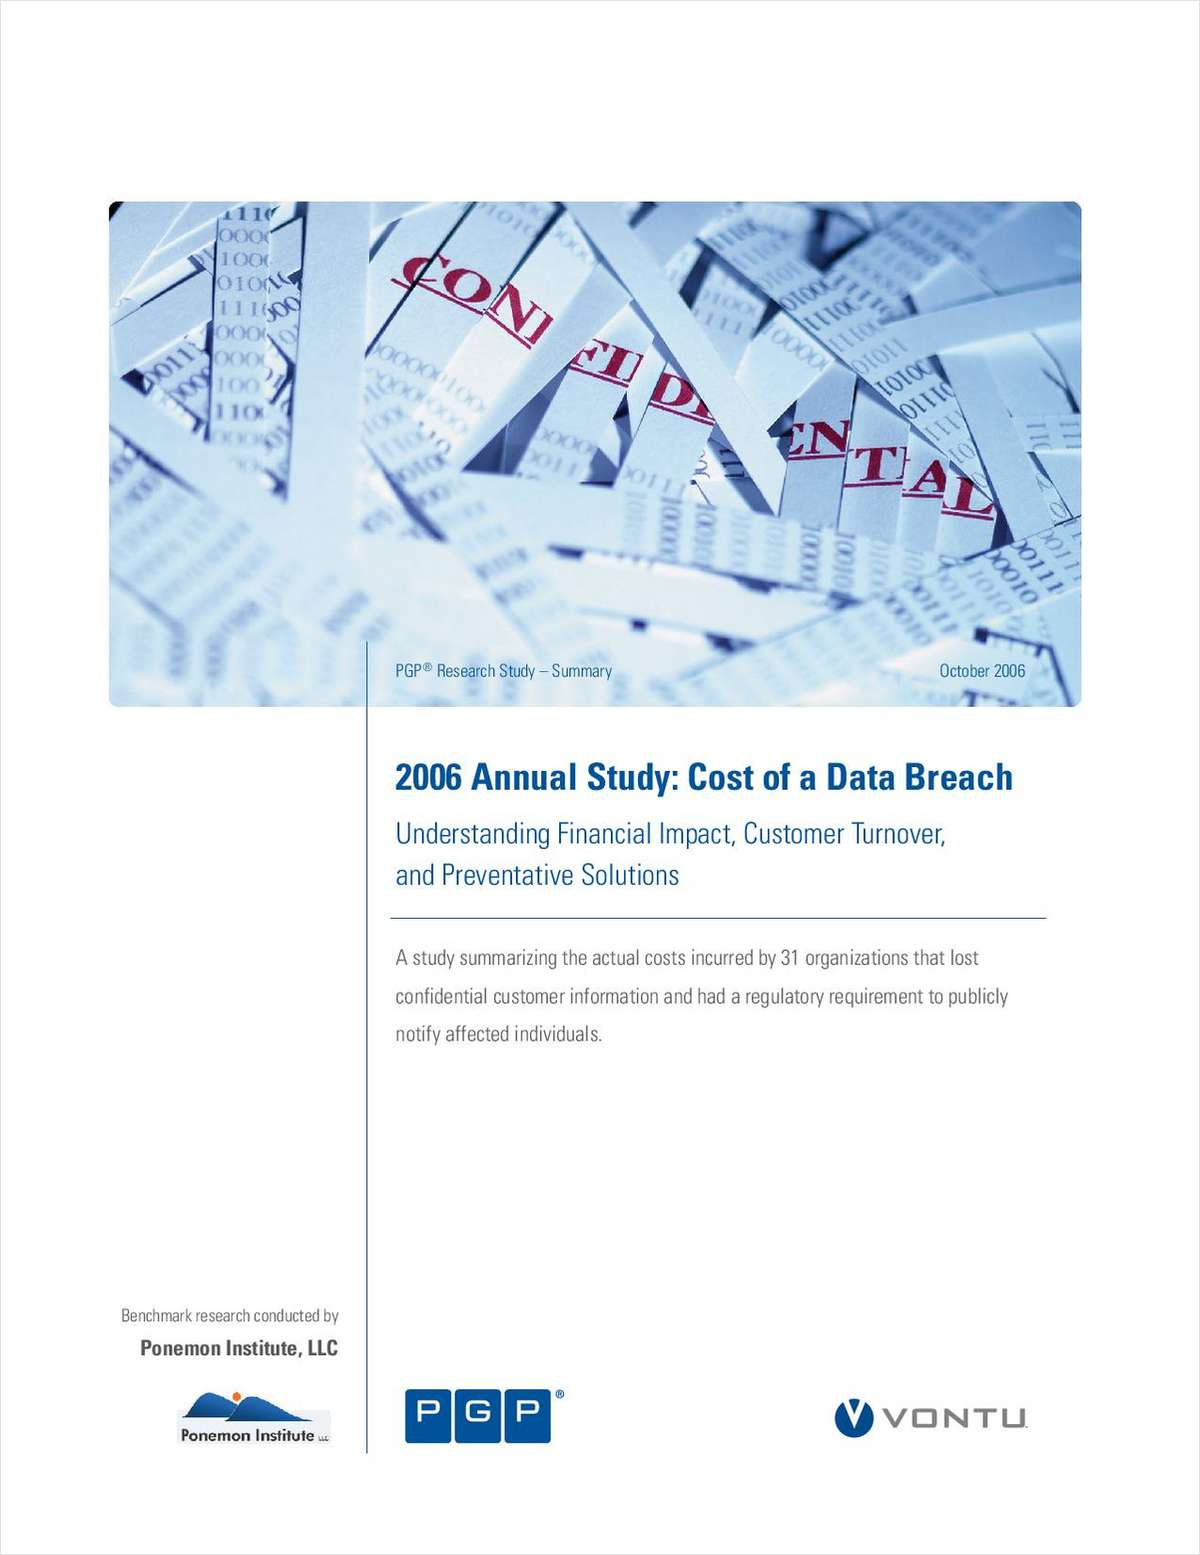 2006 Annual Study: Cost of a Data Breach